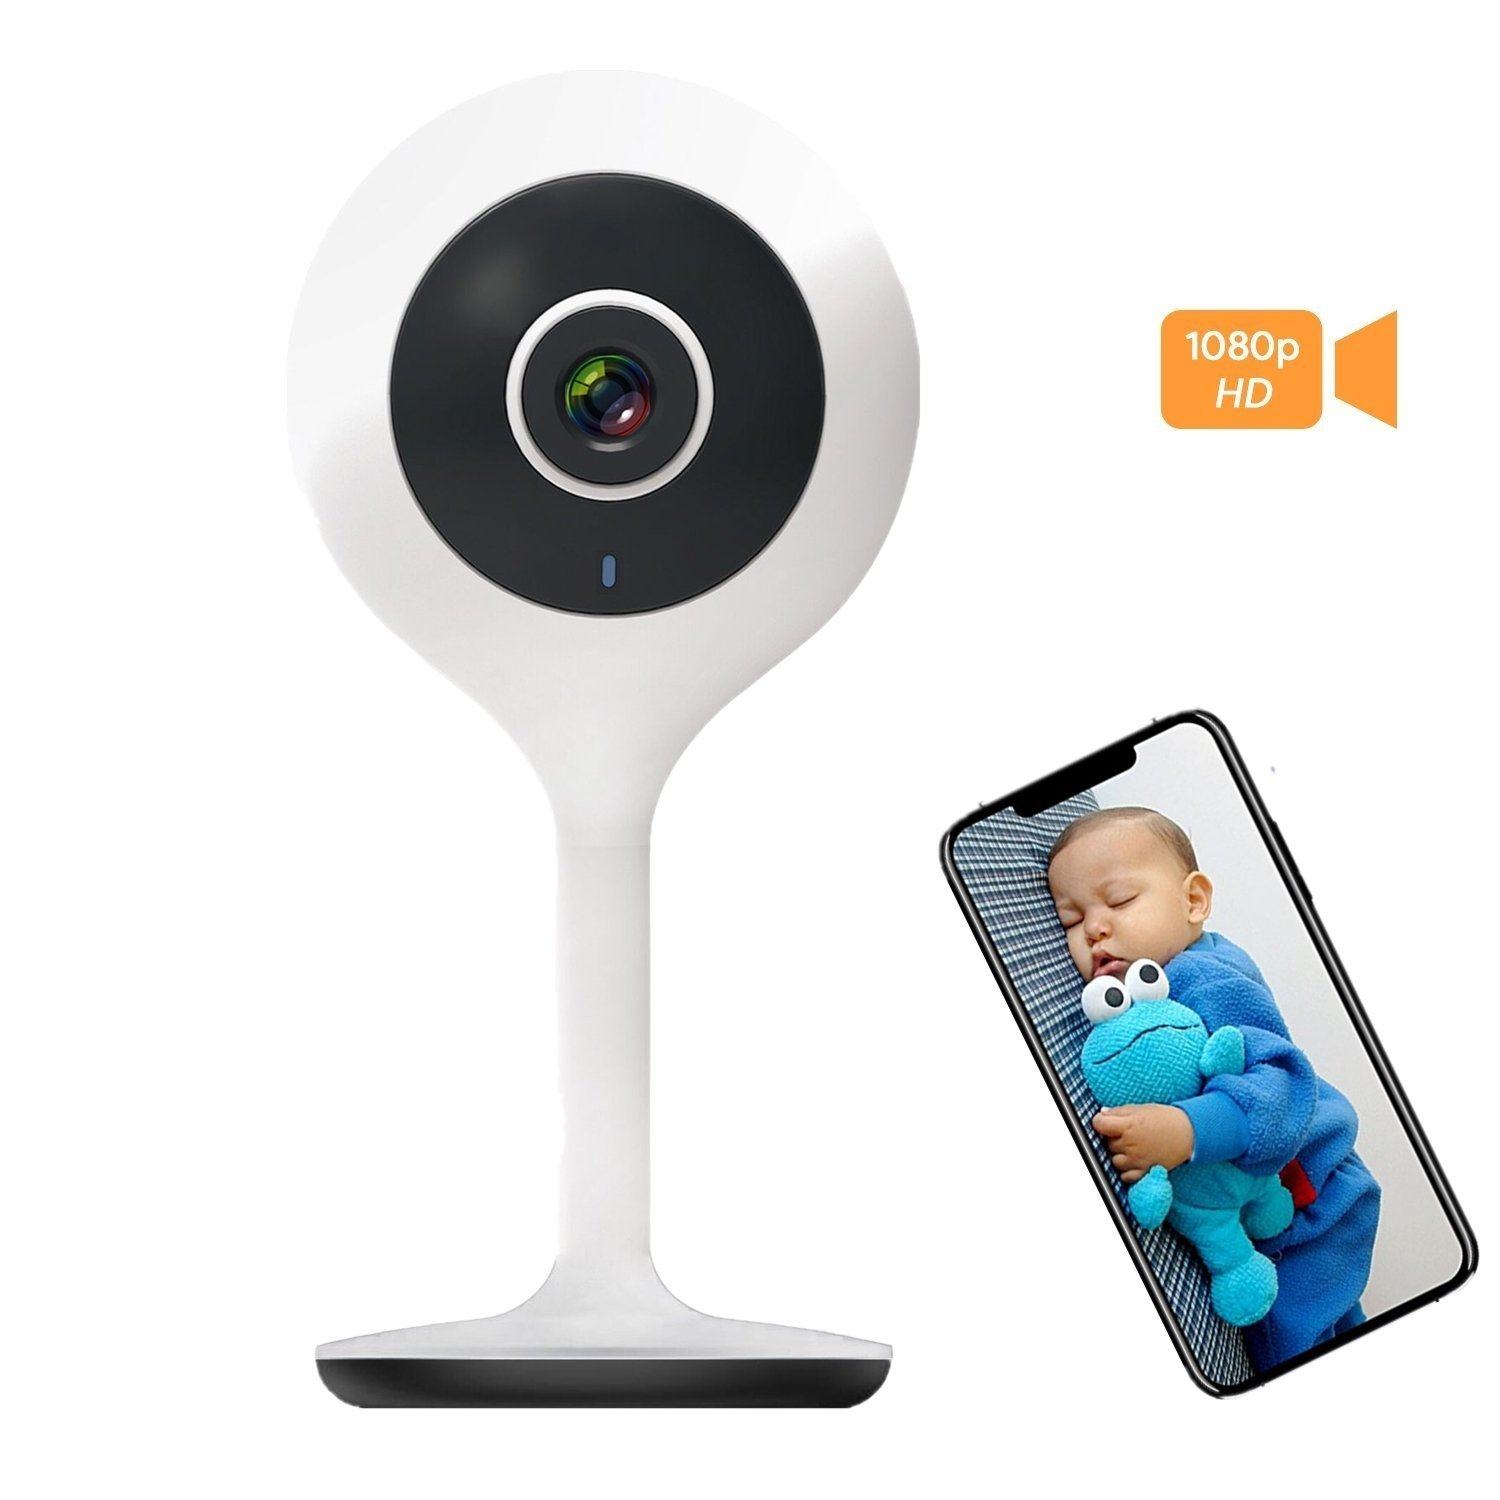 Baby Monitor with Camera, Zeetopin Home Security Camera Wireless 1080P HD Mini with Night Vision Motion Detection, Surveillance System, 2-Way Audio For Baby/Elder / Pet ZS-GQ3S